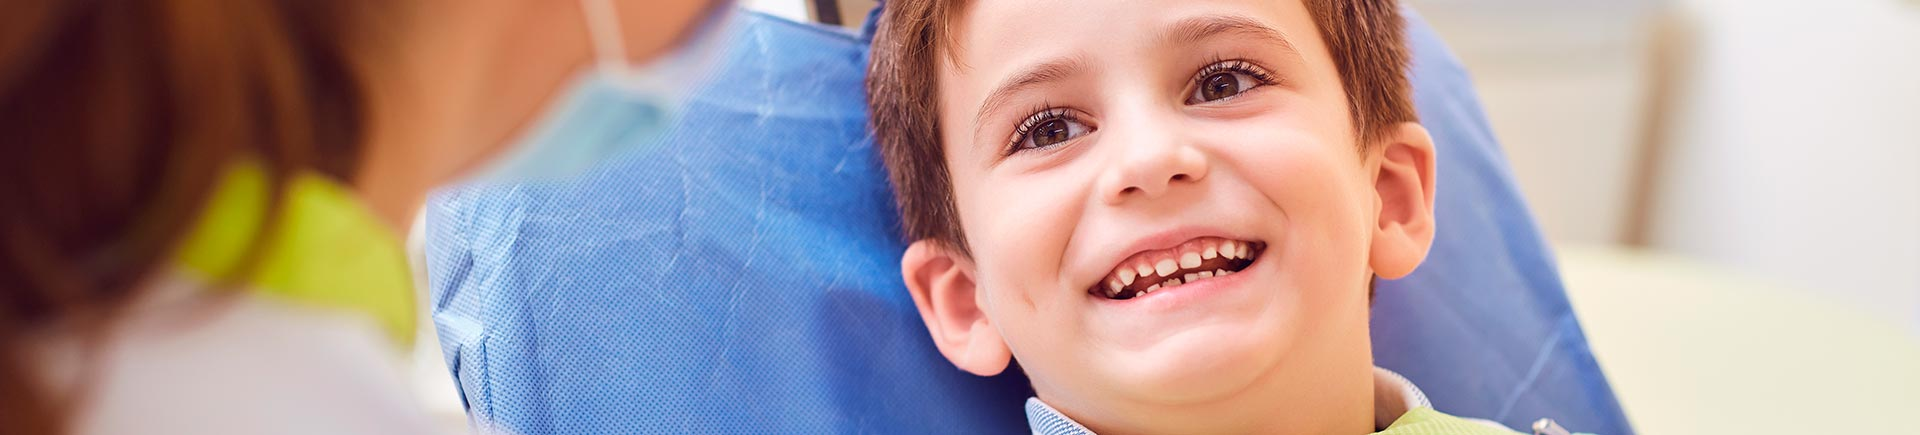 Relaxed joyful little boy in a dental chair during a dental appointment.